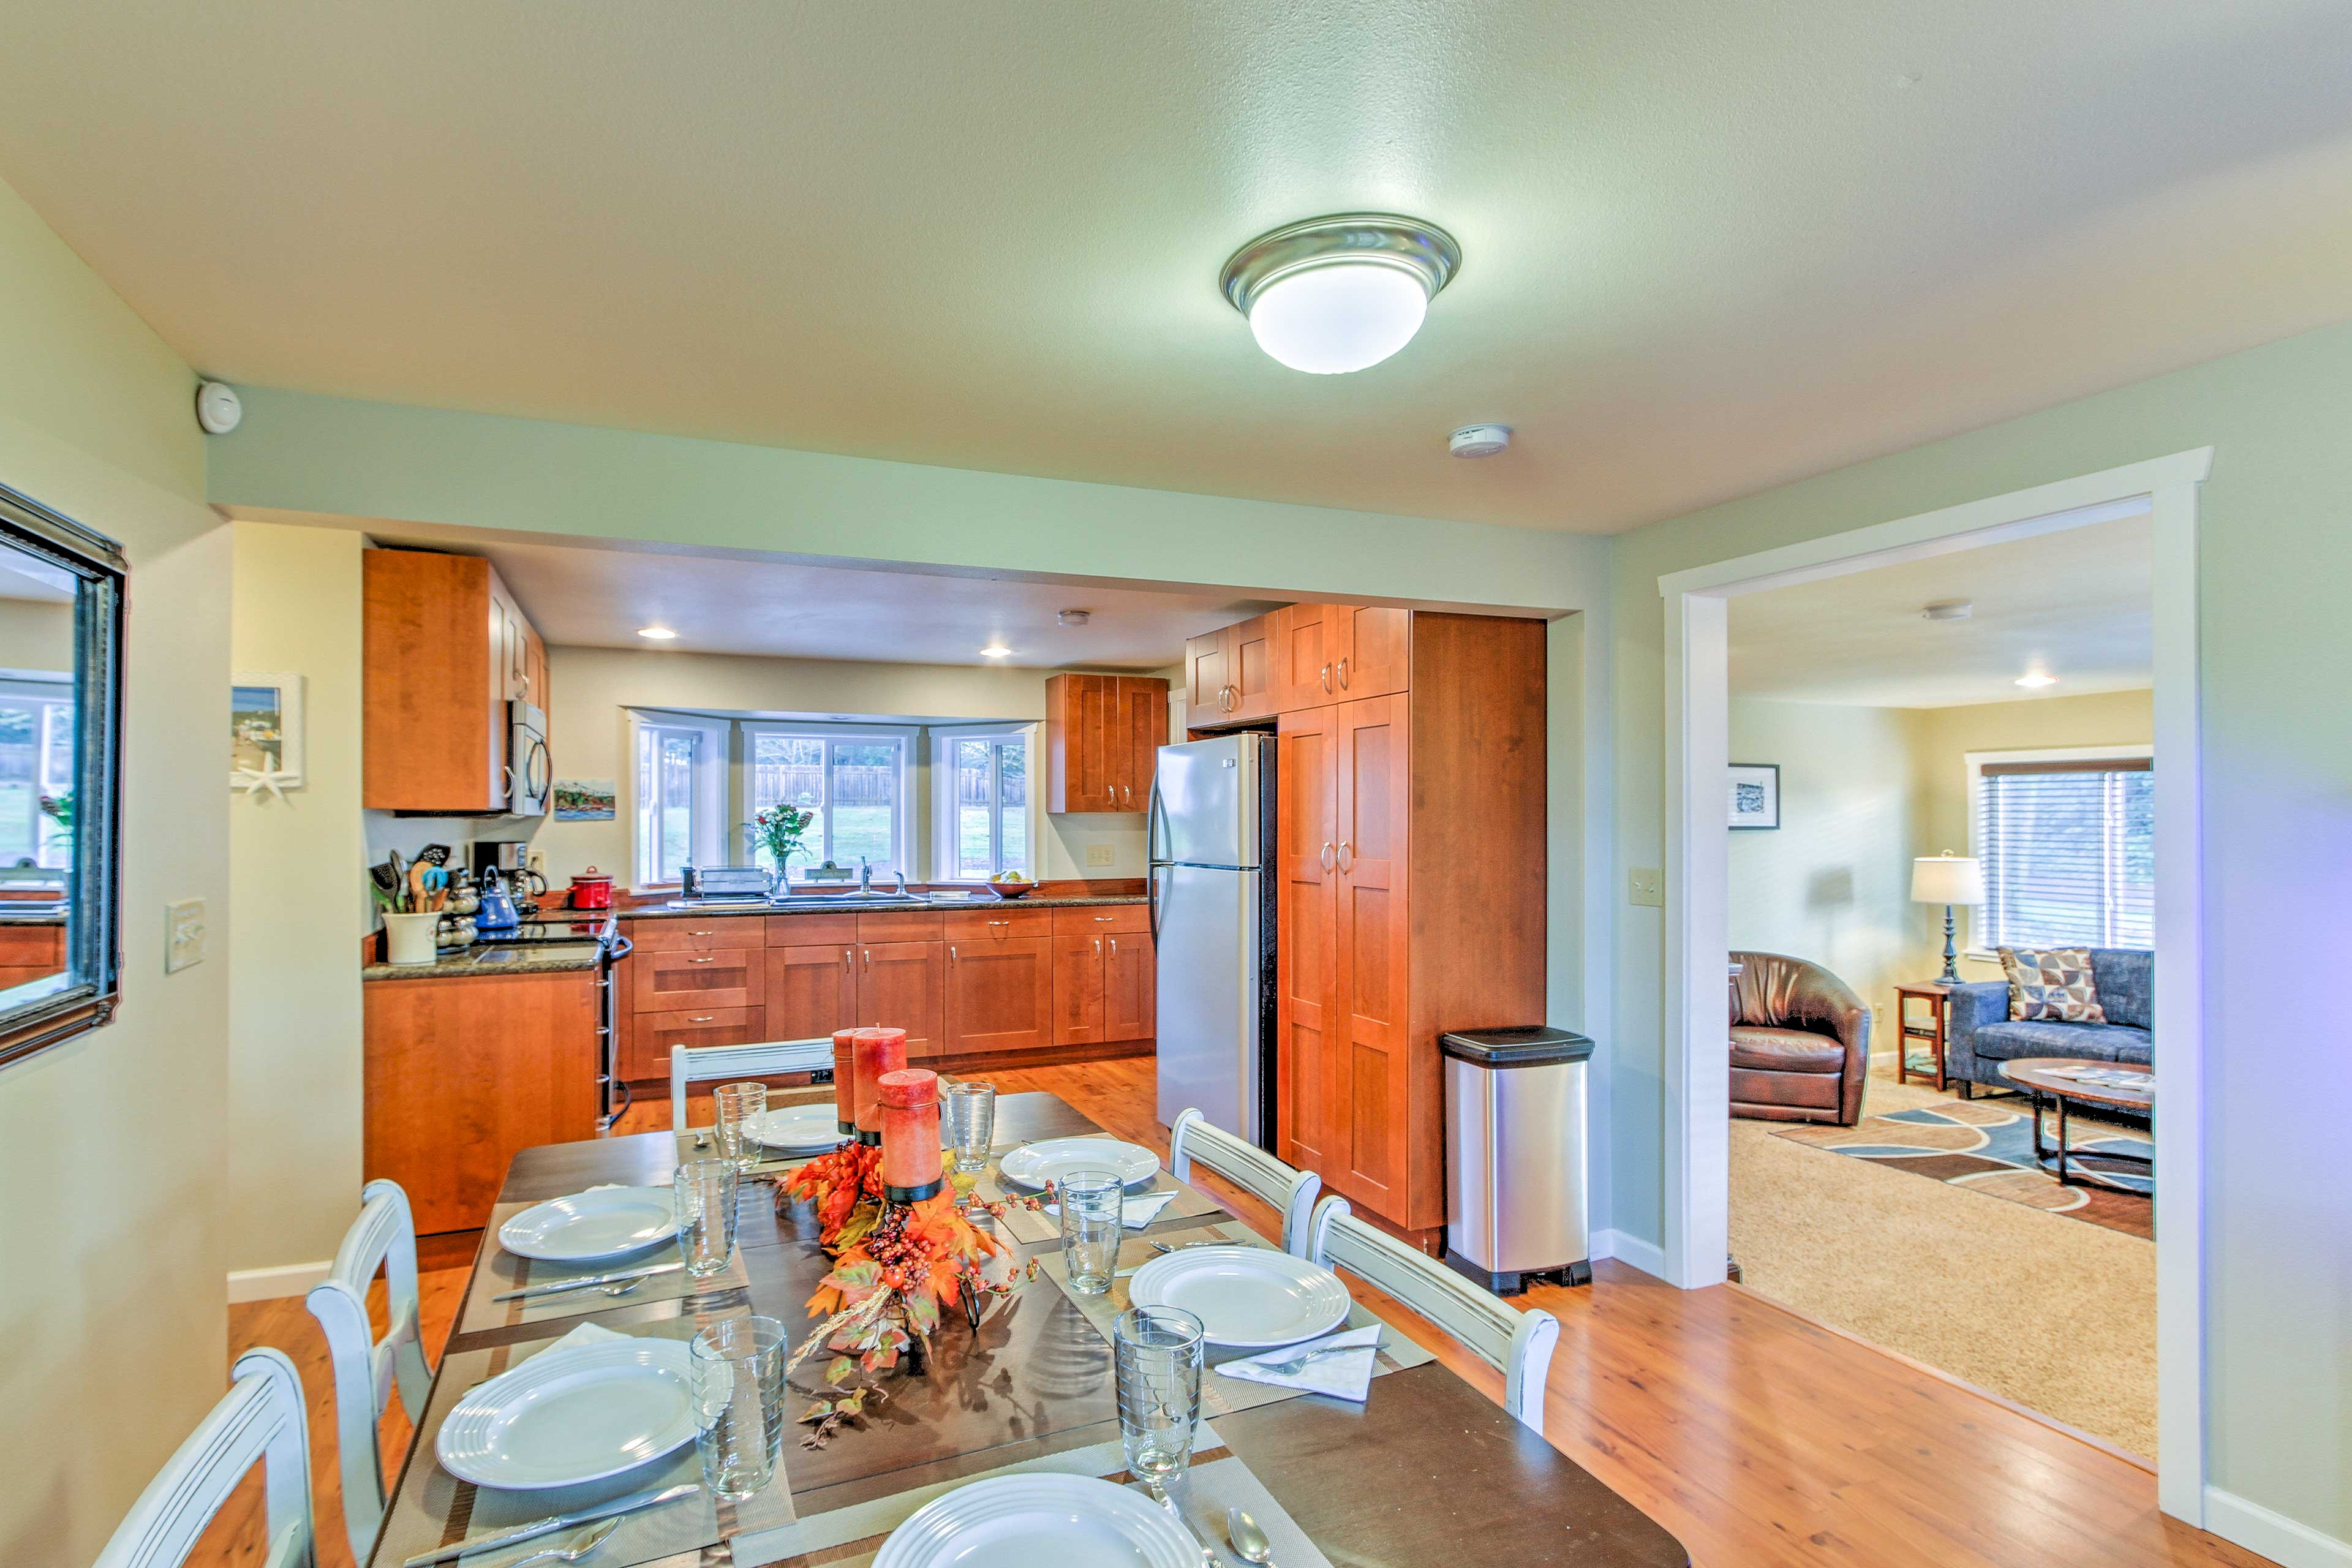 Up to 6 guests can spread out in 1,400 square feet of living space.